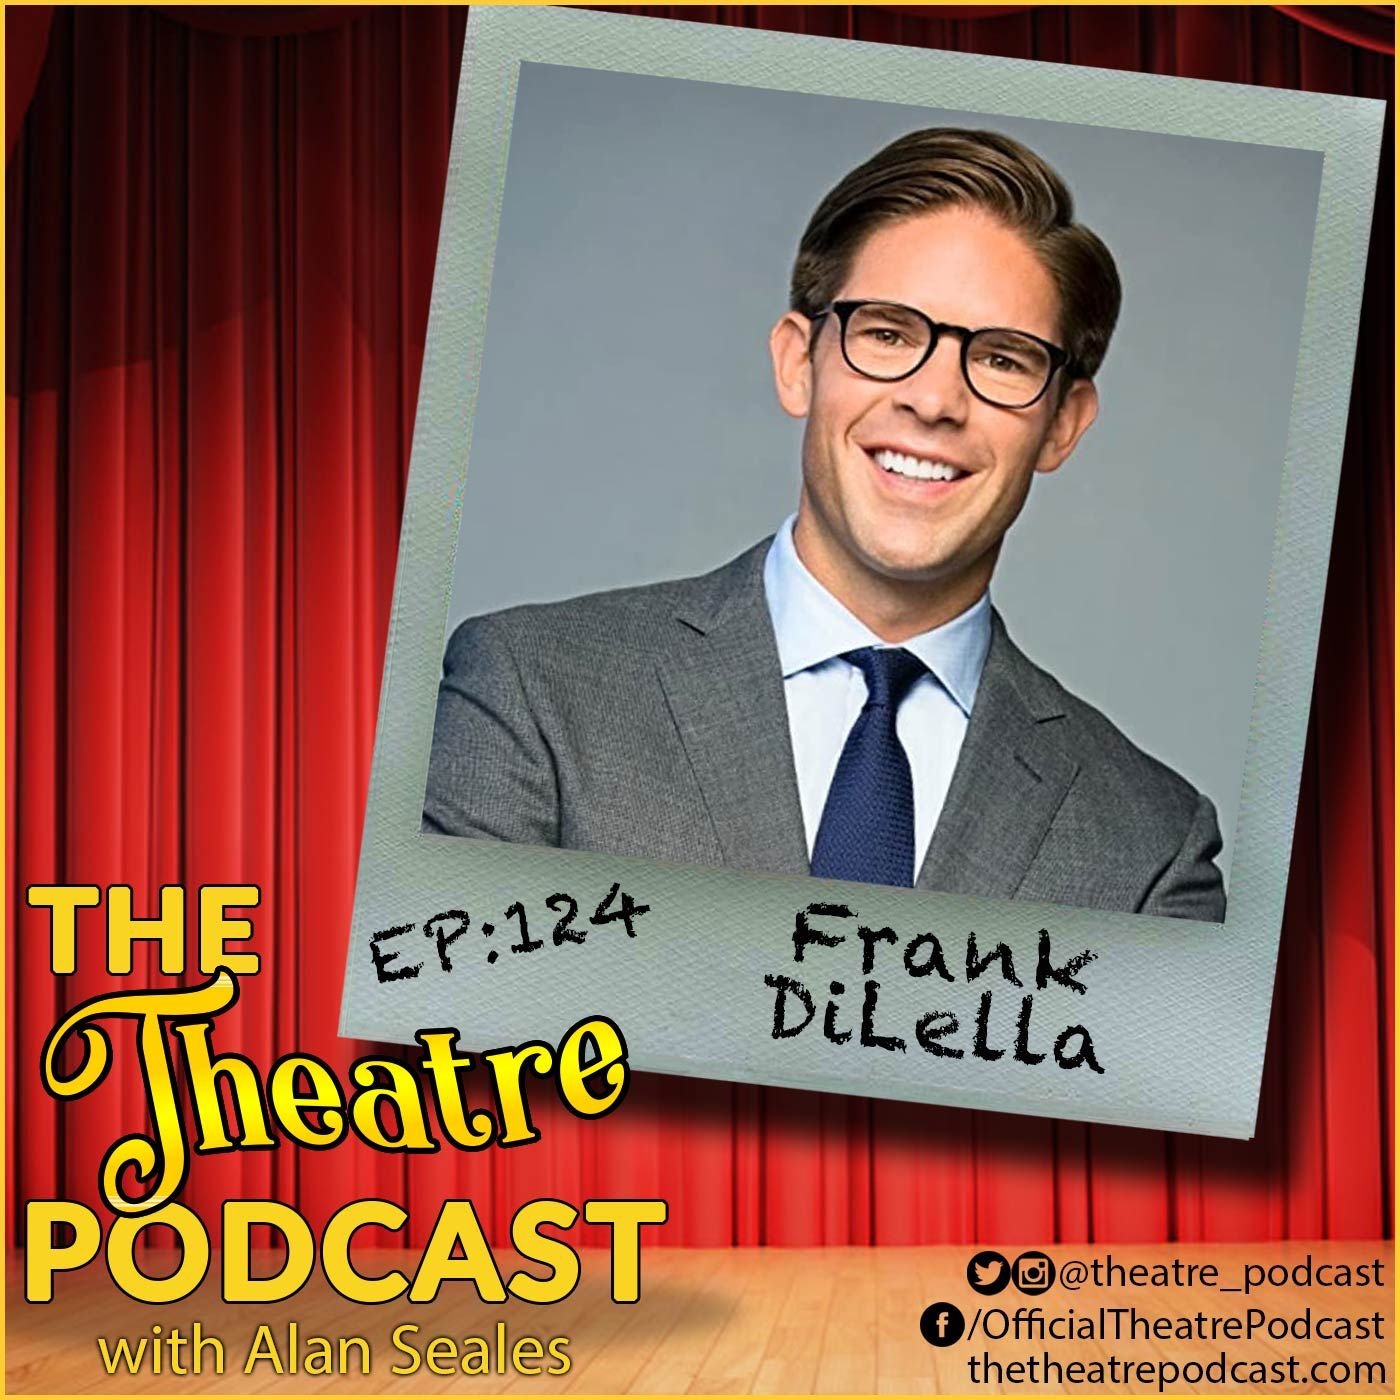 """Ep124 - Frank DiLella: Emmy Award-winning host of """"On Stage"""" on Spectrum News NY1"""